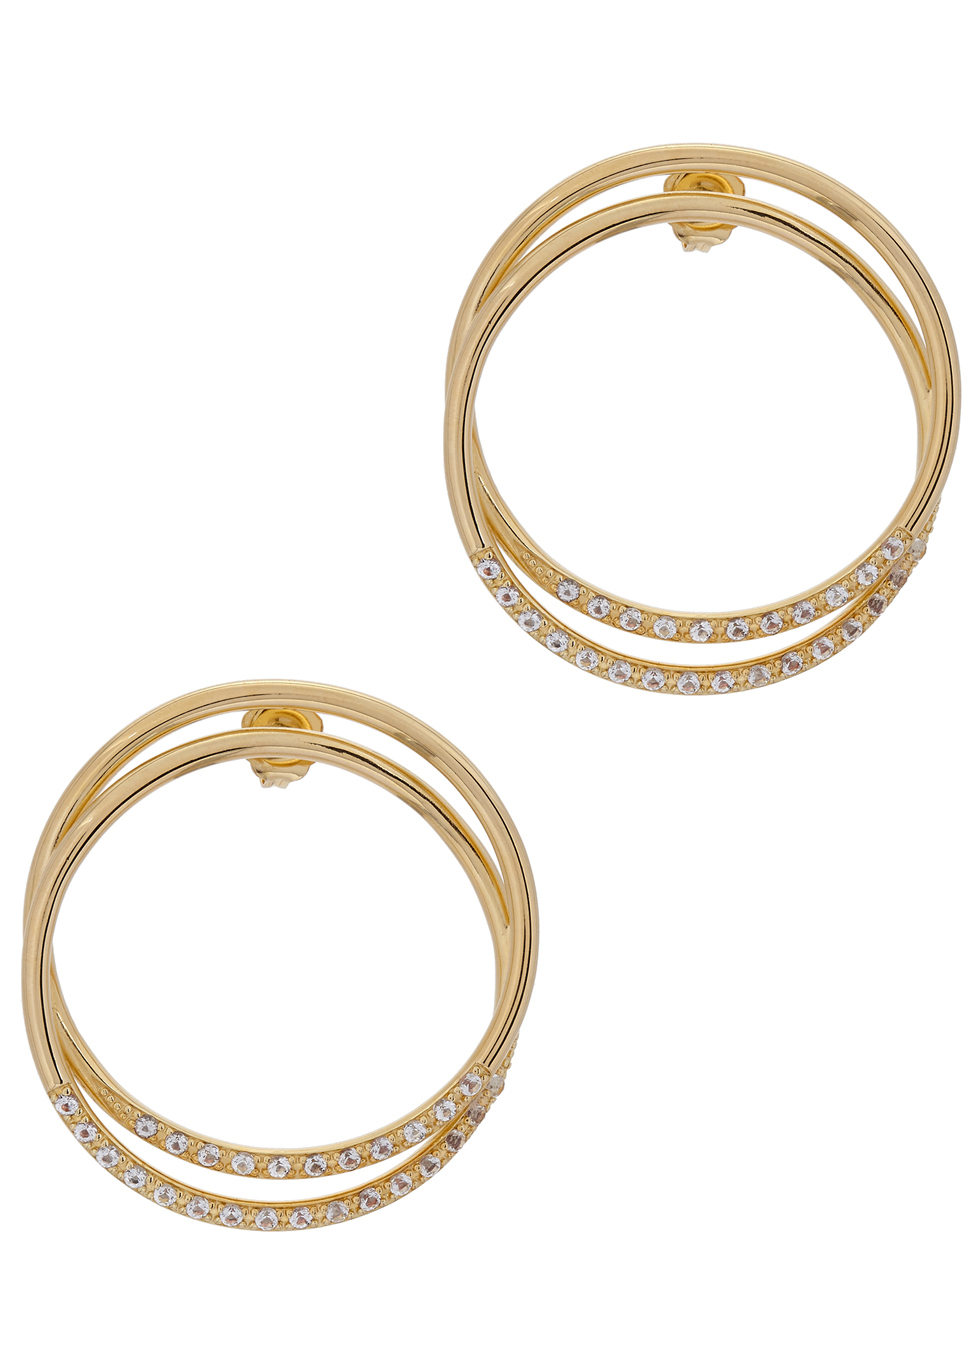 Elson 23kt Gold Plated Hoop Earrings - predominant colour: gold; occasions: evening, occasion; style: hoop; length: mid; size: large/oversized; material: chain/metal; fastening: pierced; finish: metallic; season: a/w 2016; wardrobe: event